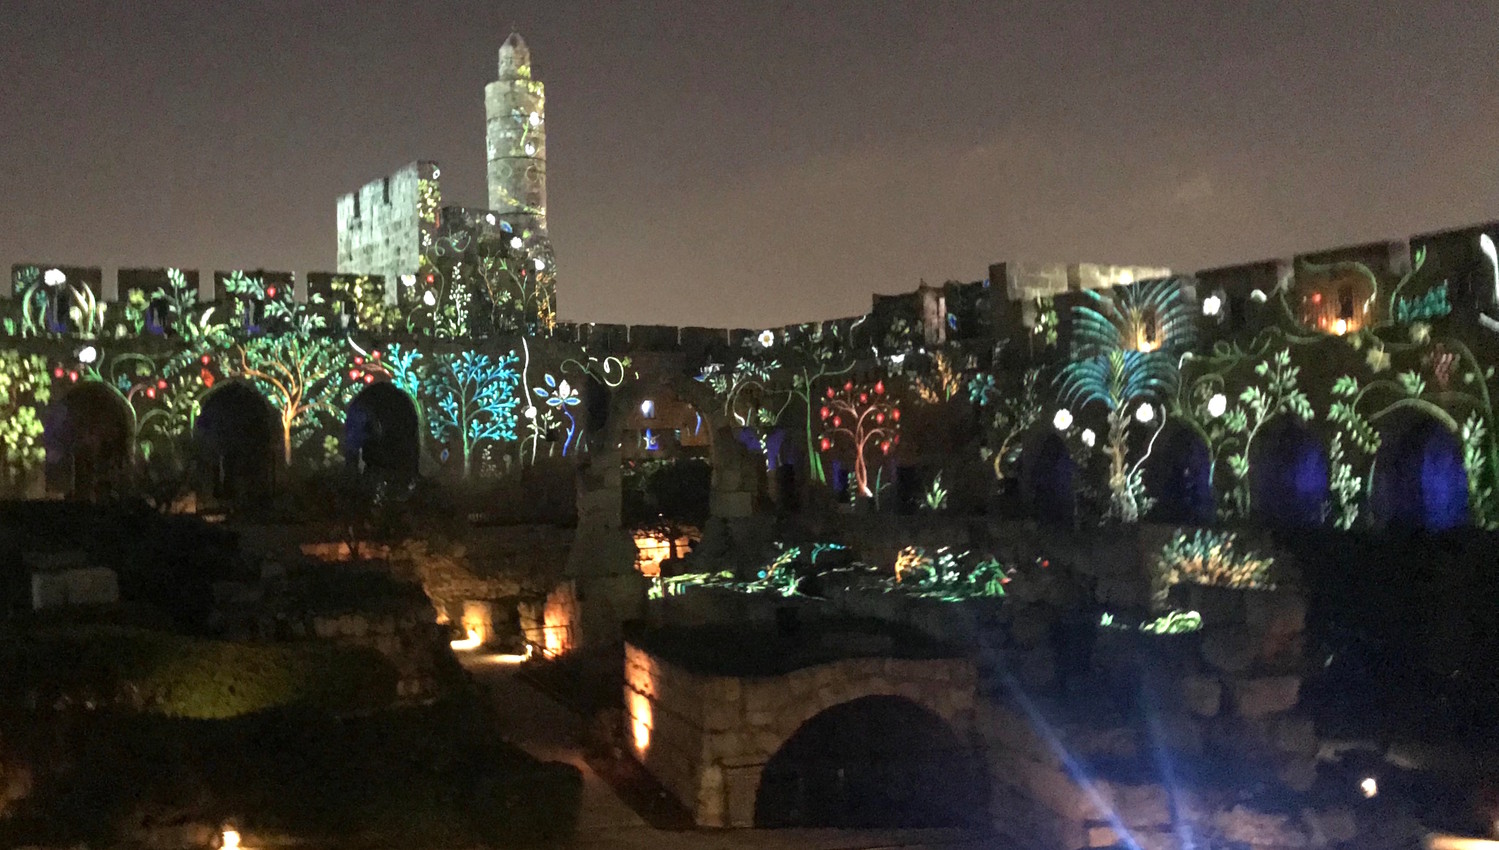 Introductory scenes to the new Tower of David Night Spectacular that opens on April 1.